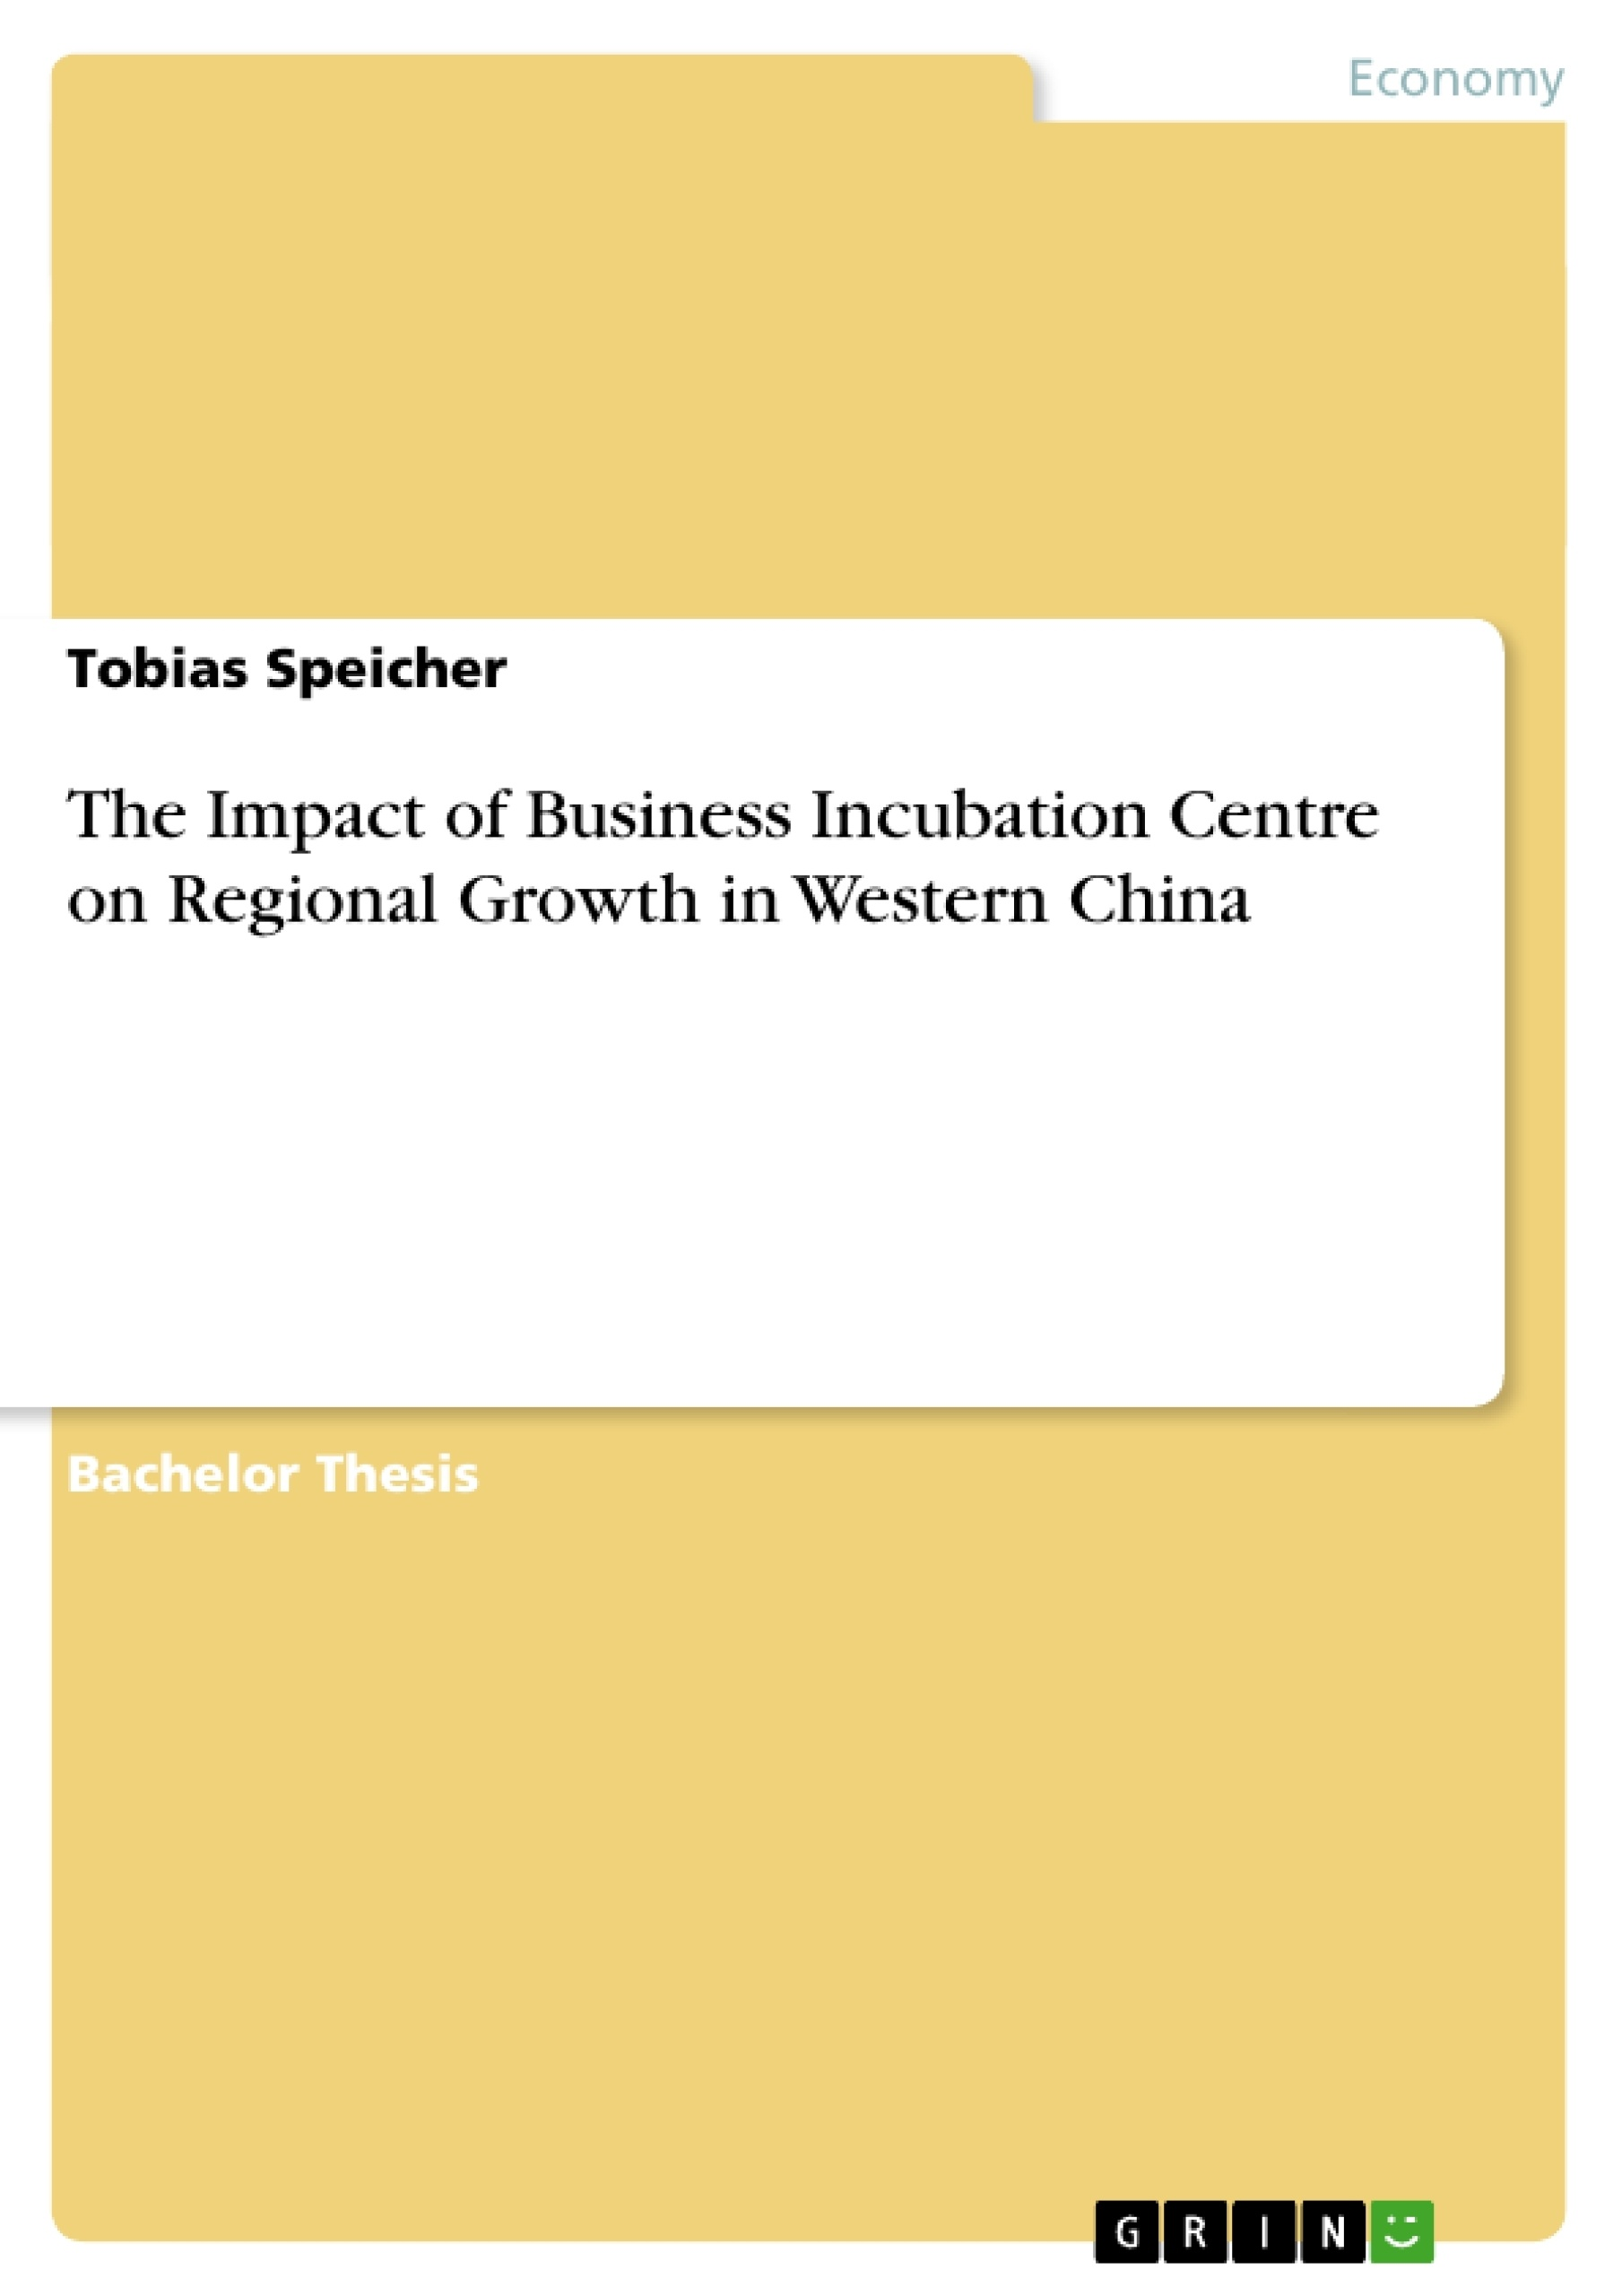 Title: The Impact of Business Incubation Centre on Regional Growth in Western China